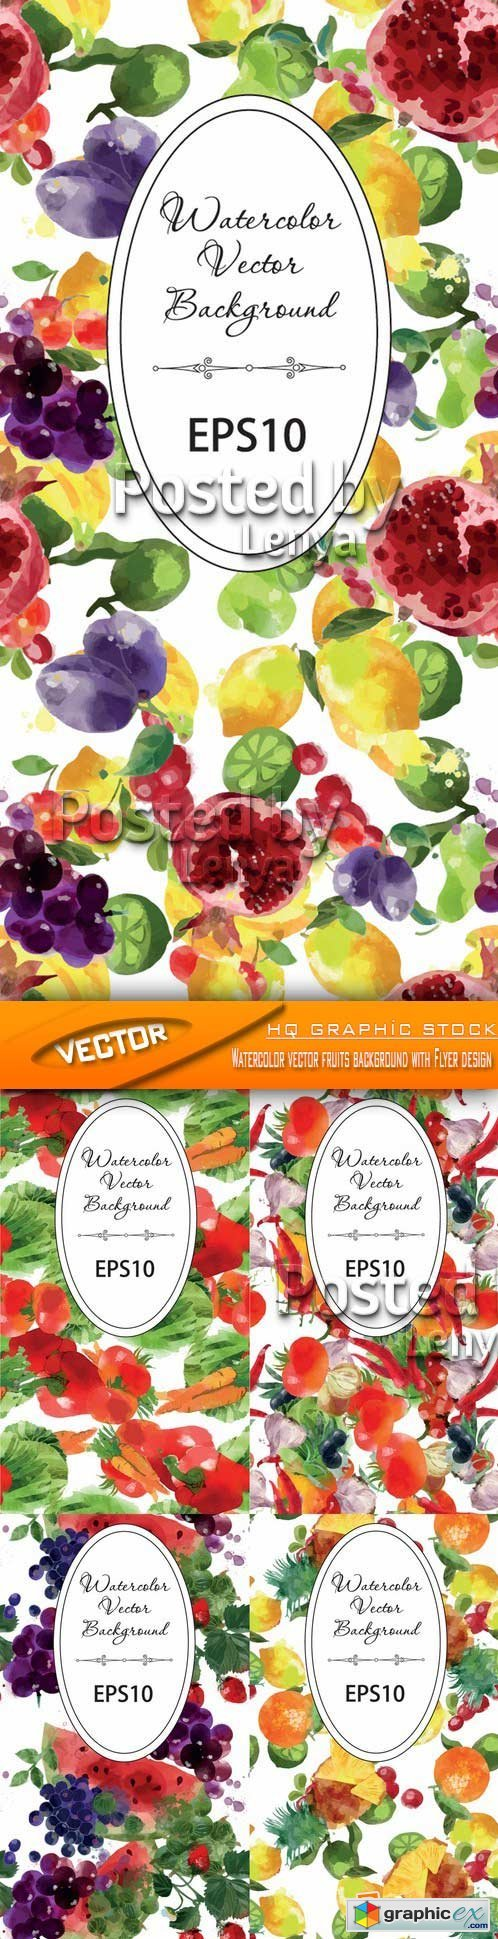 Stock Vector - Watercolor vector fruits background with Flyer design